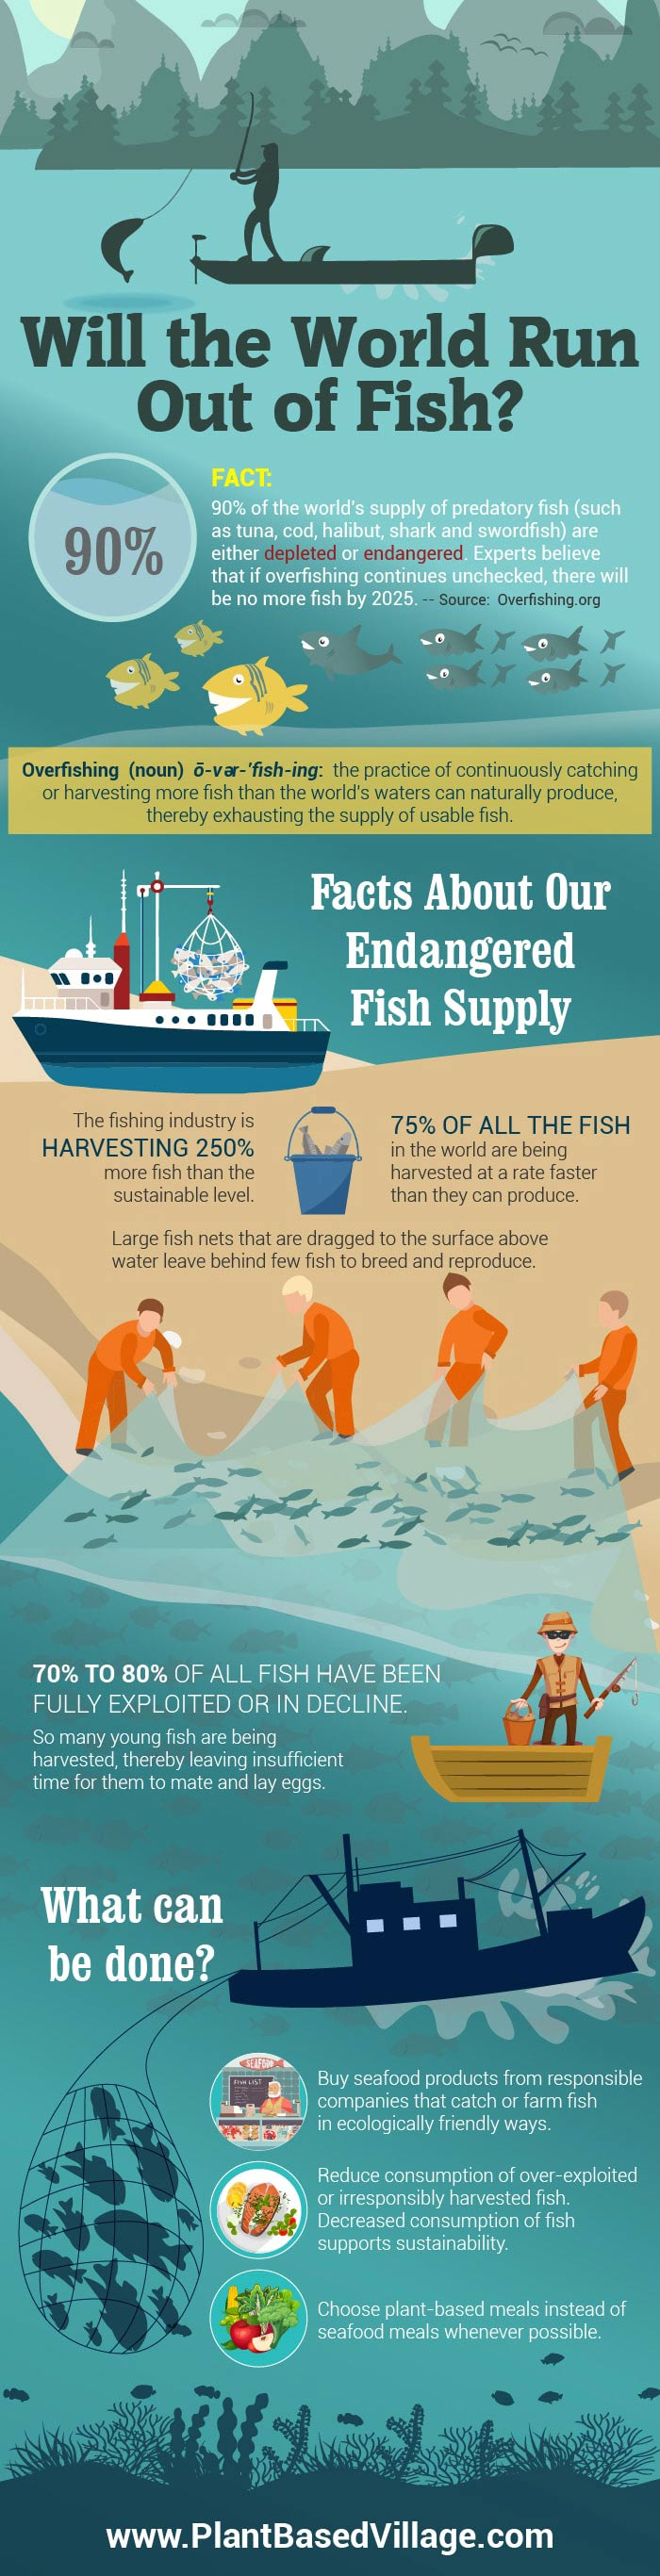 will the world run out of fish? infographic